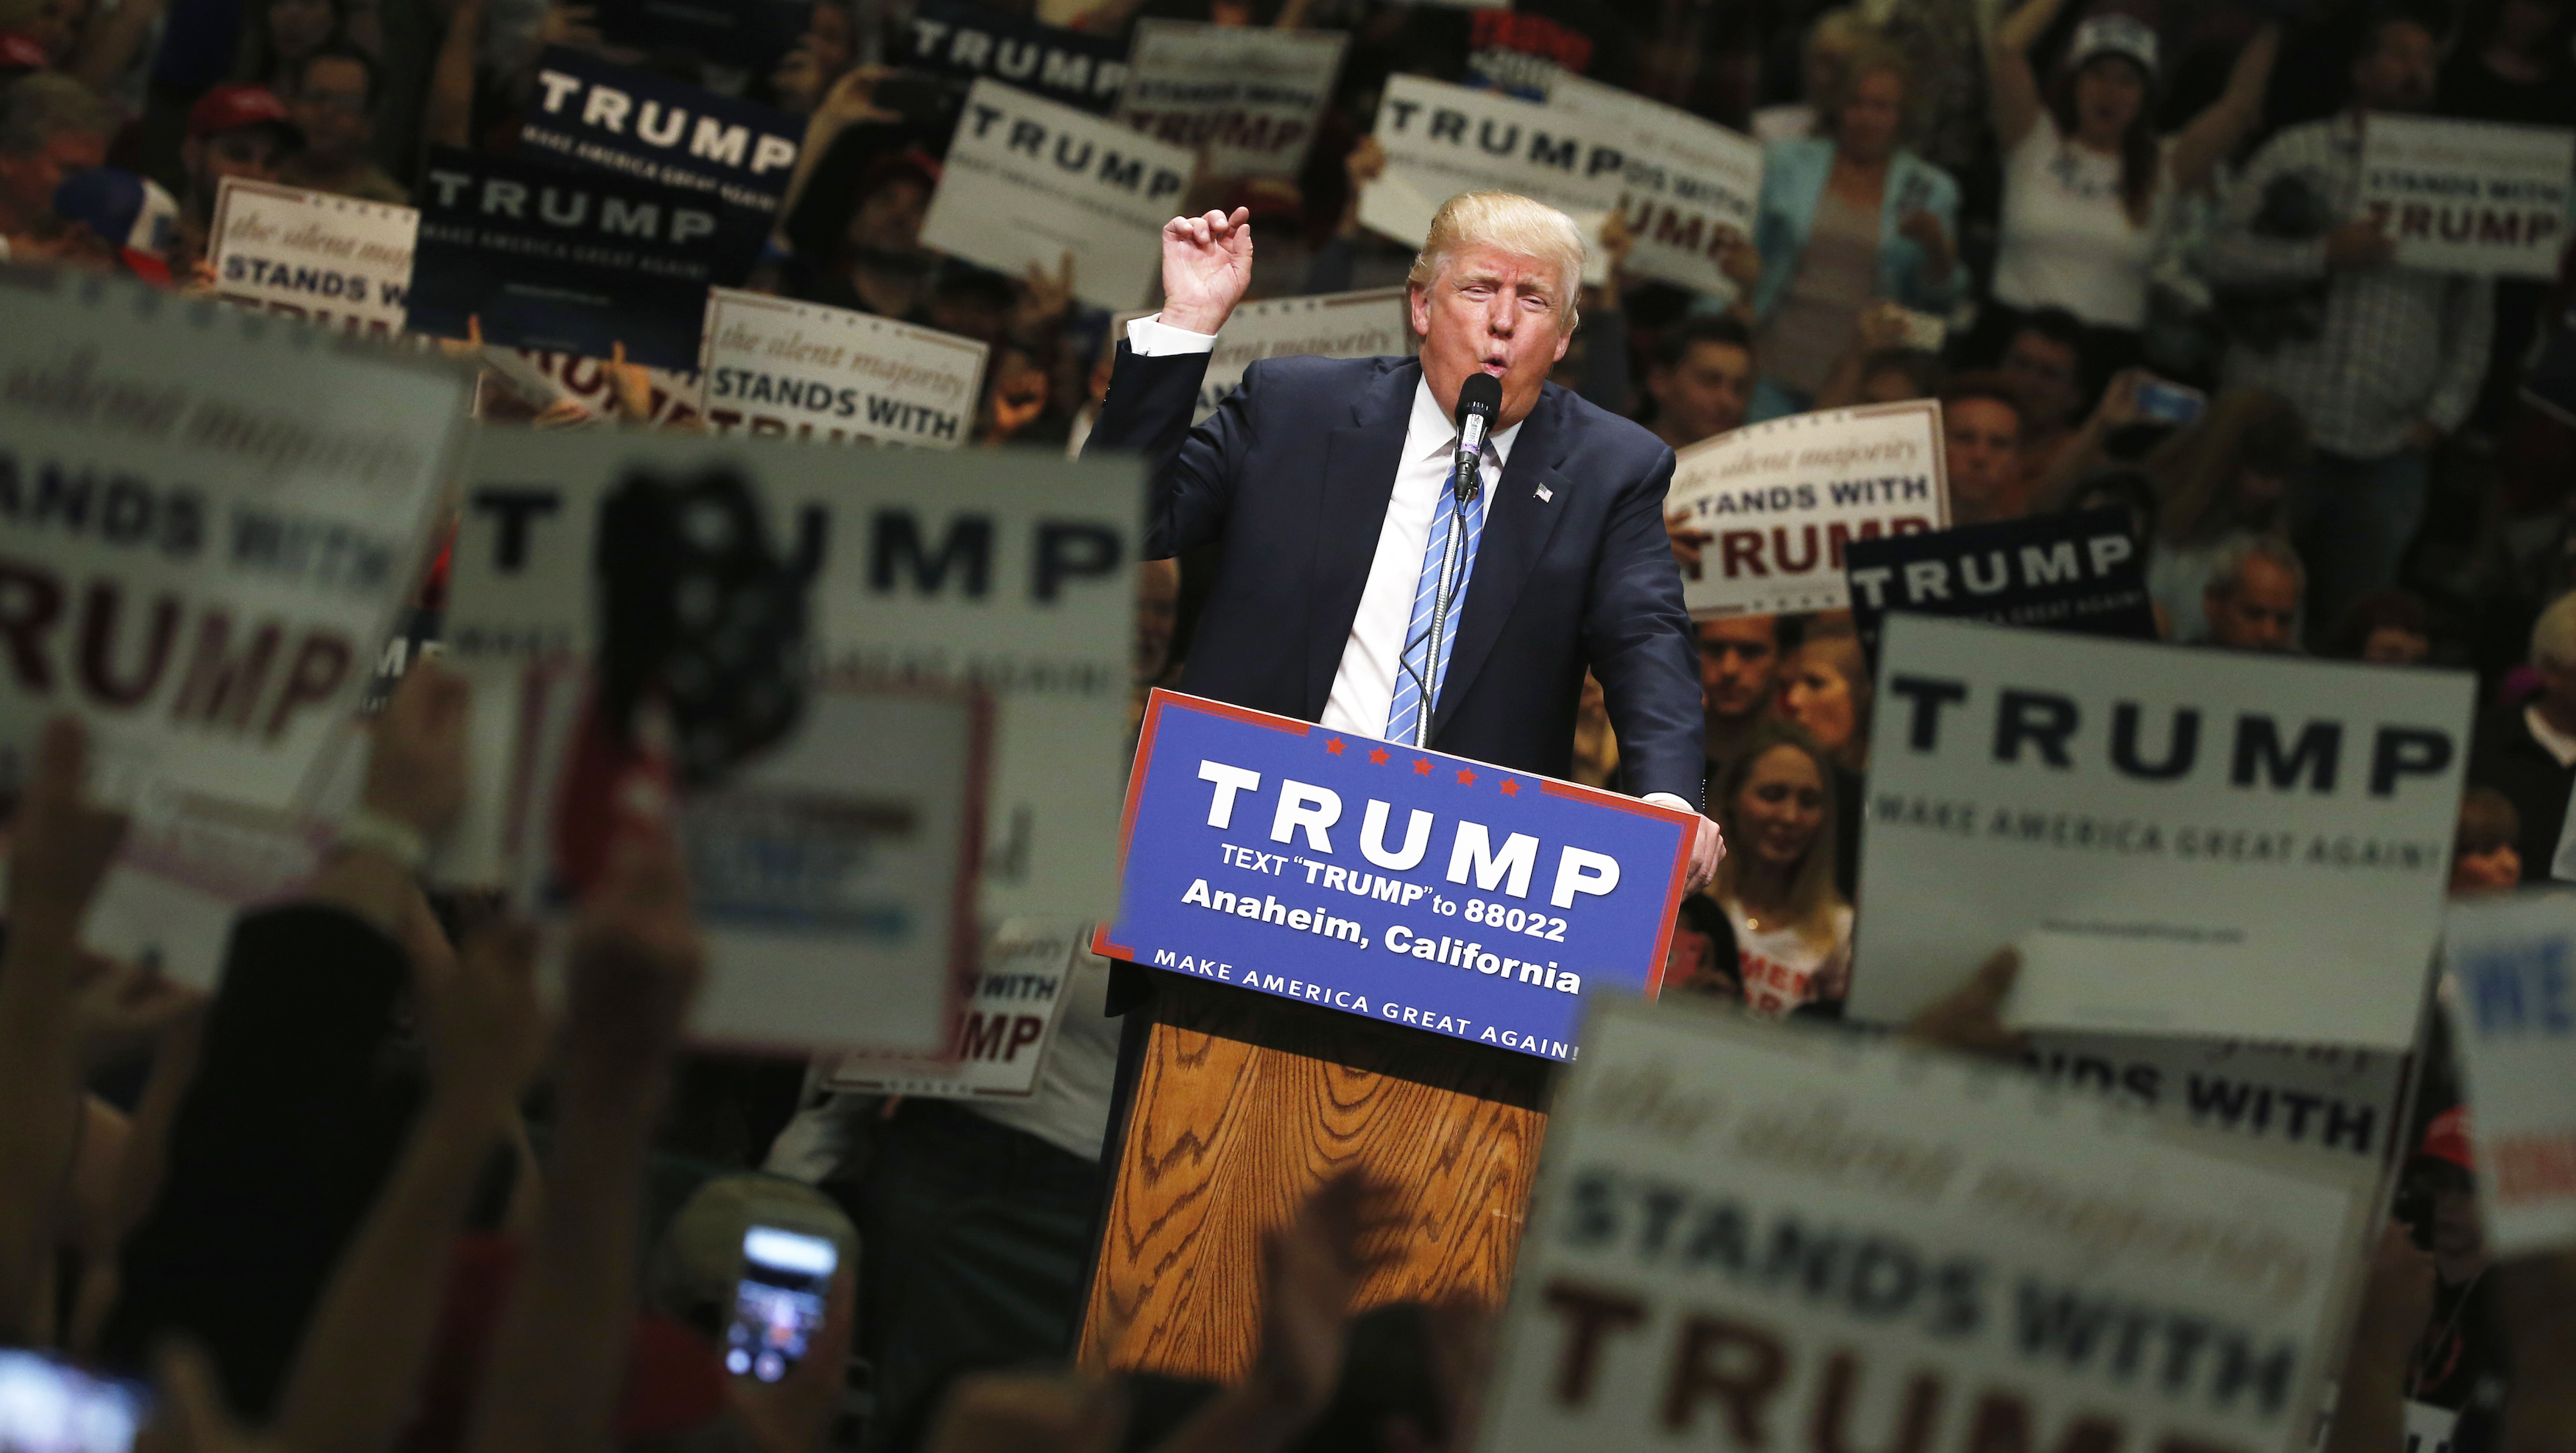 Republican U.S. presidential candidate Trump holds rally with supporters in Anaheim, California